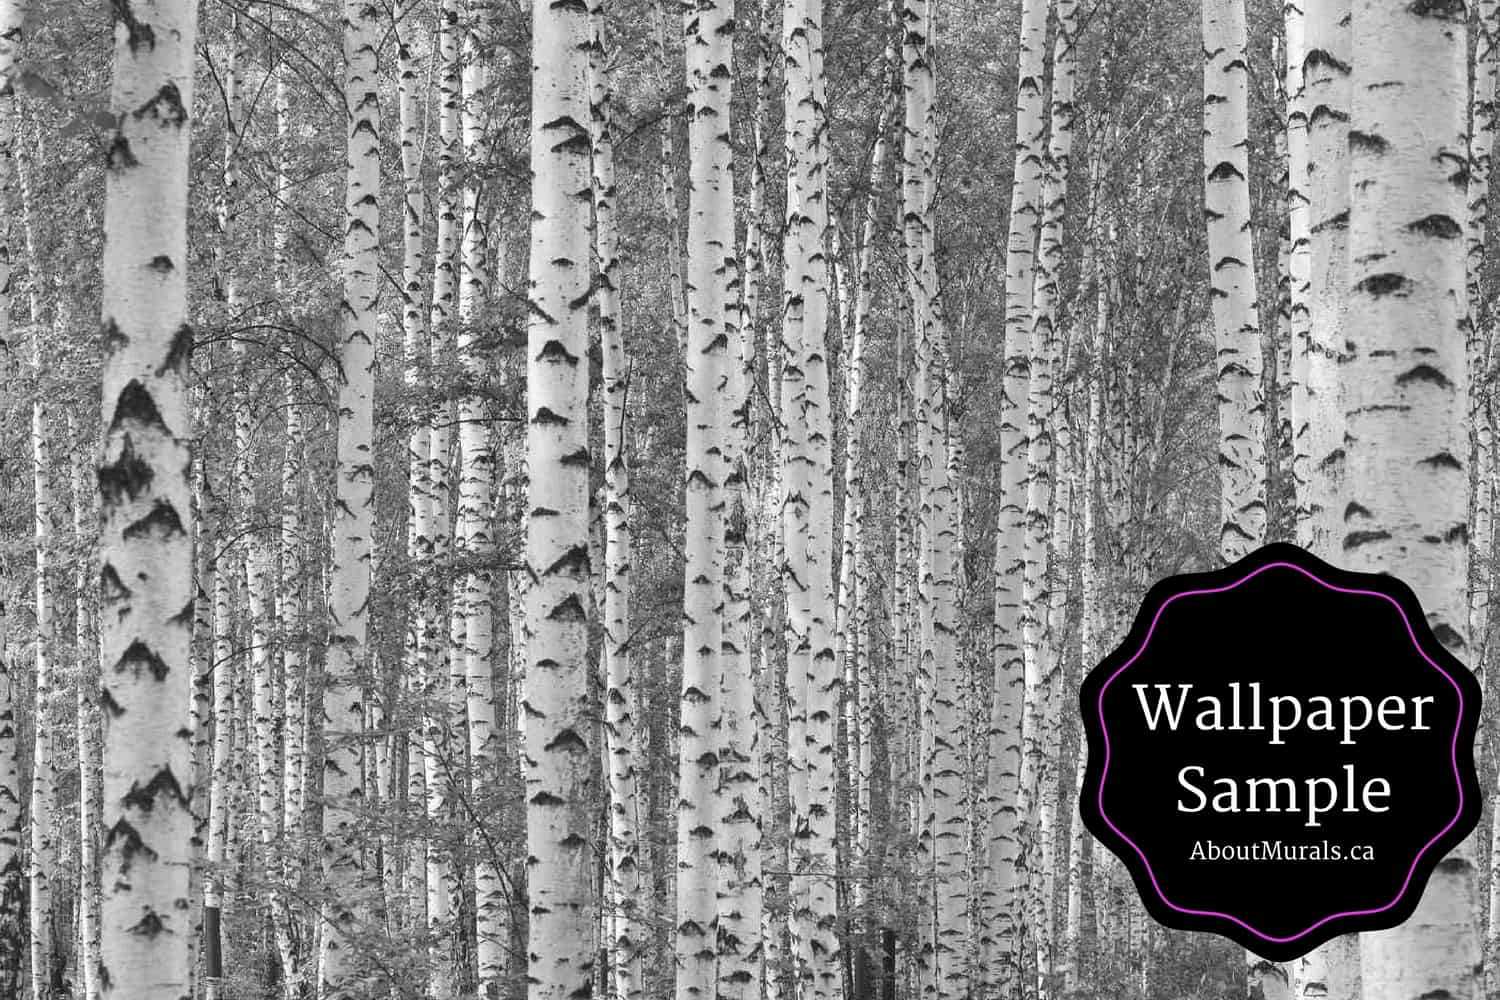 Wallpaper Samples Available Of This Black And White Birch Tree From AboutMuralsca